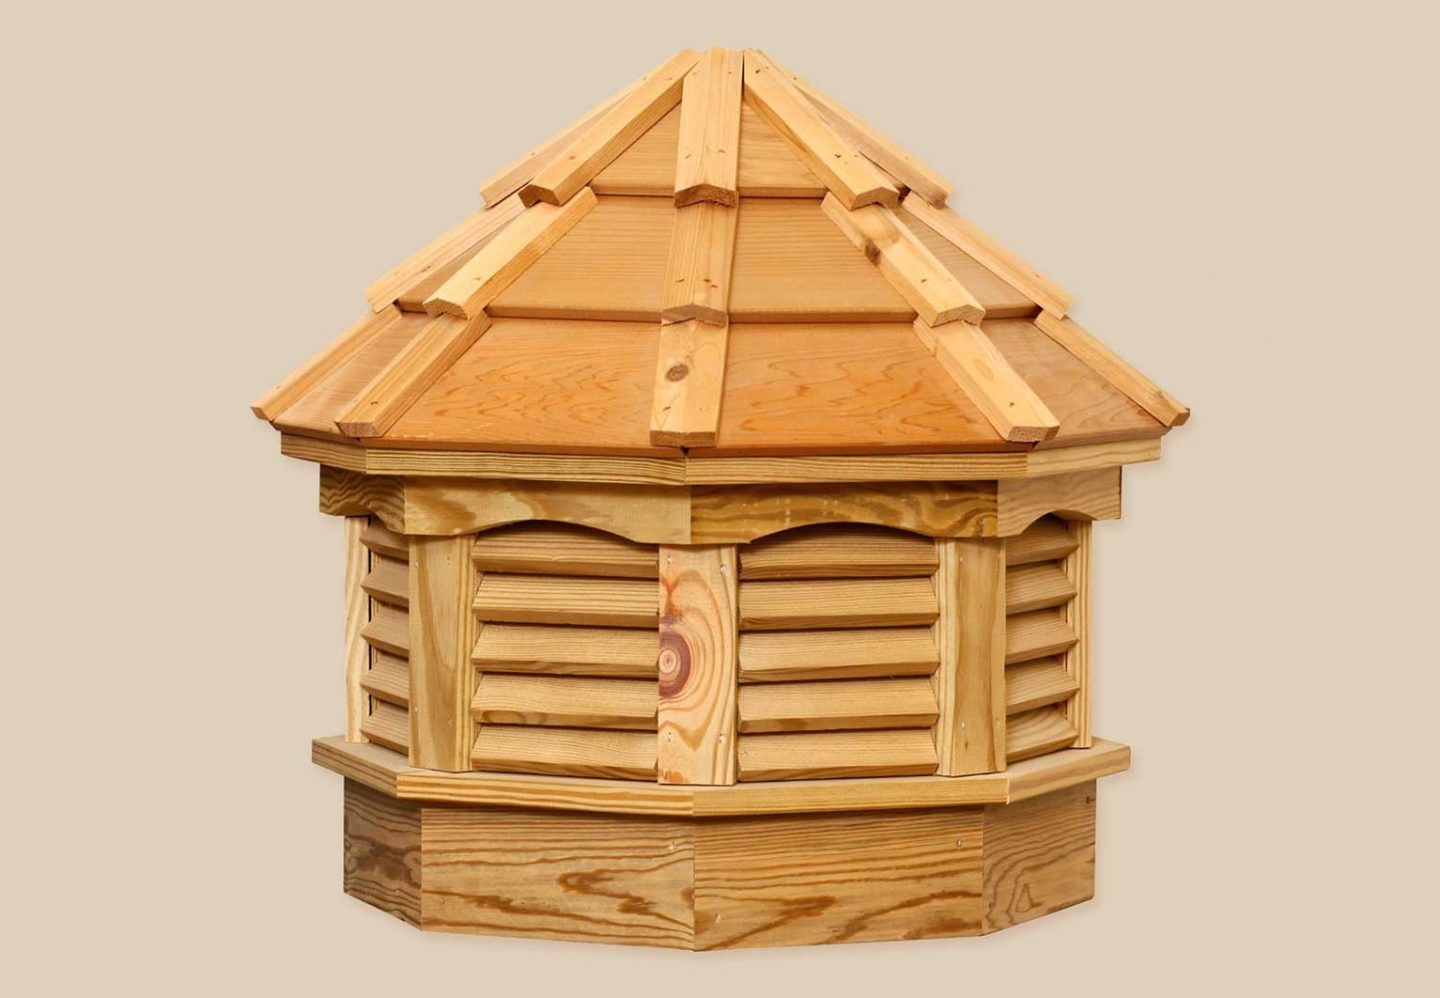 Wooden-Gazebo-Series-Cupola